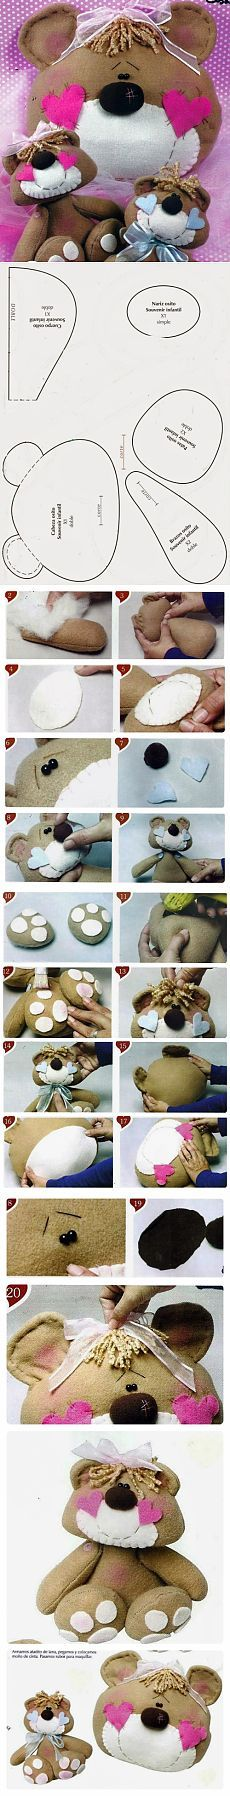 DIY teddy bear plushie